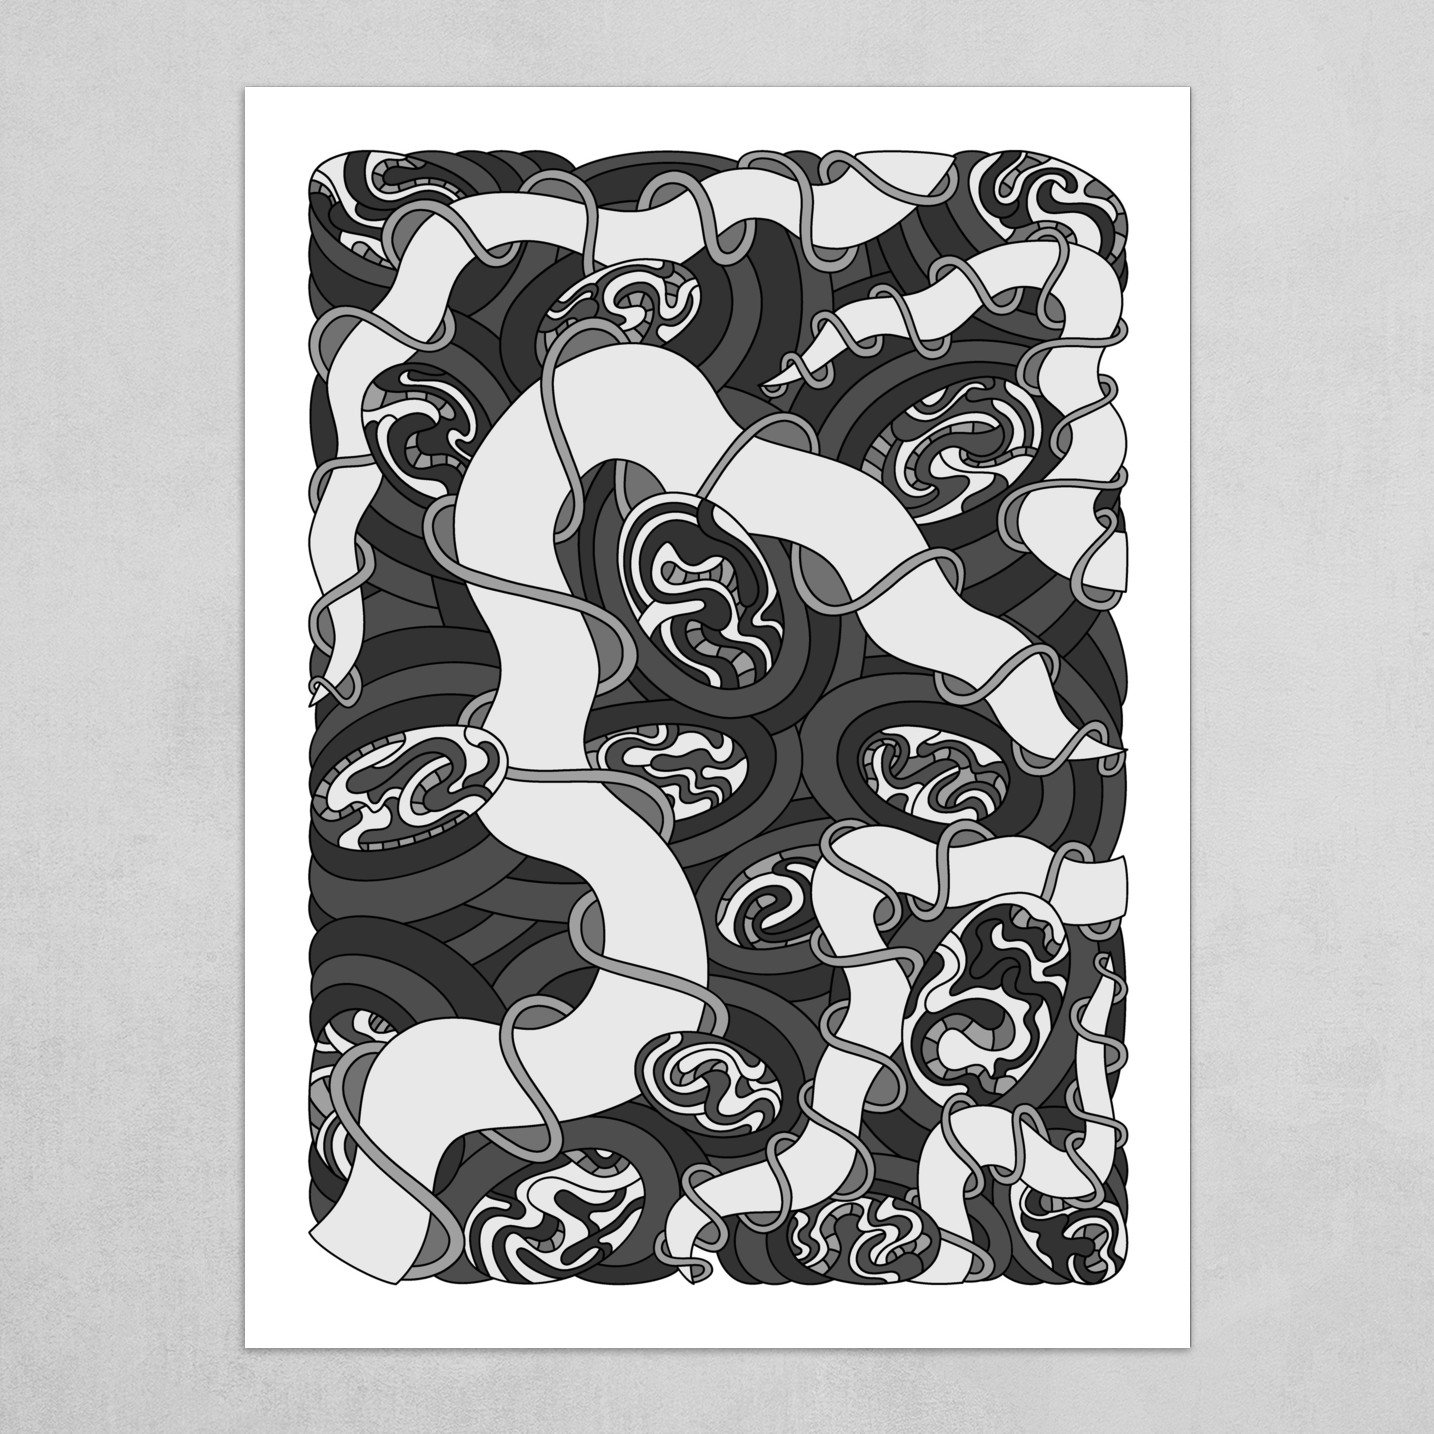 Wandering Abstract Line Art 04: Grayscale